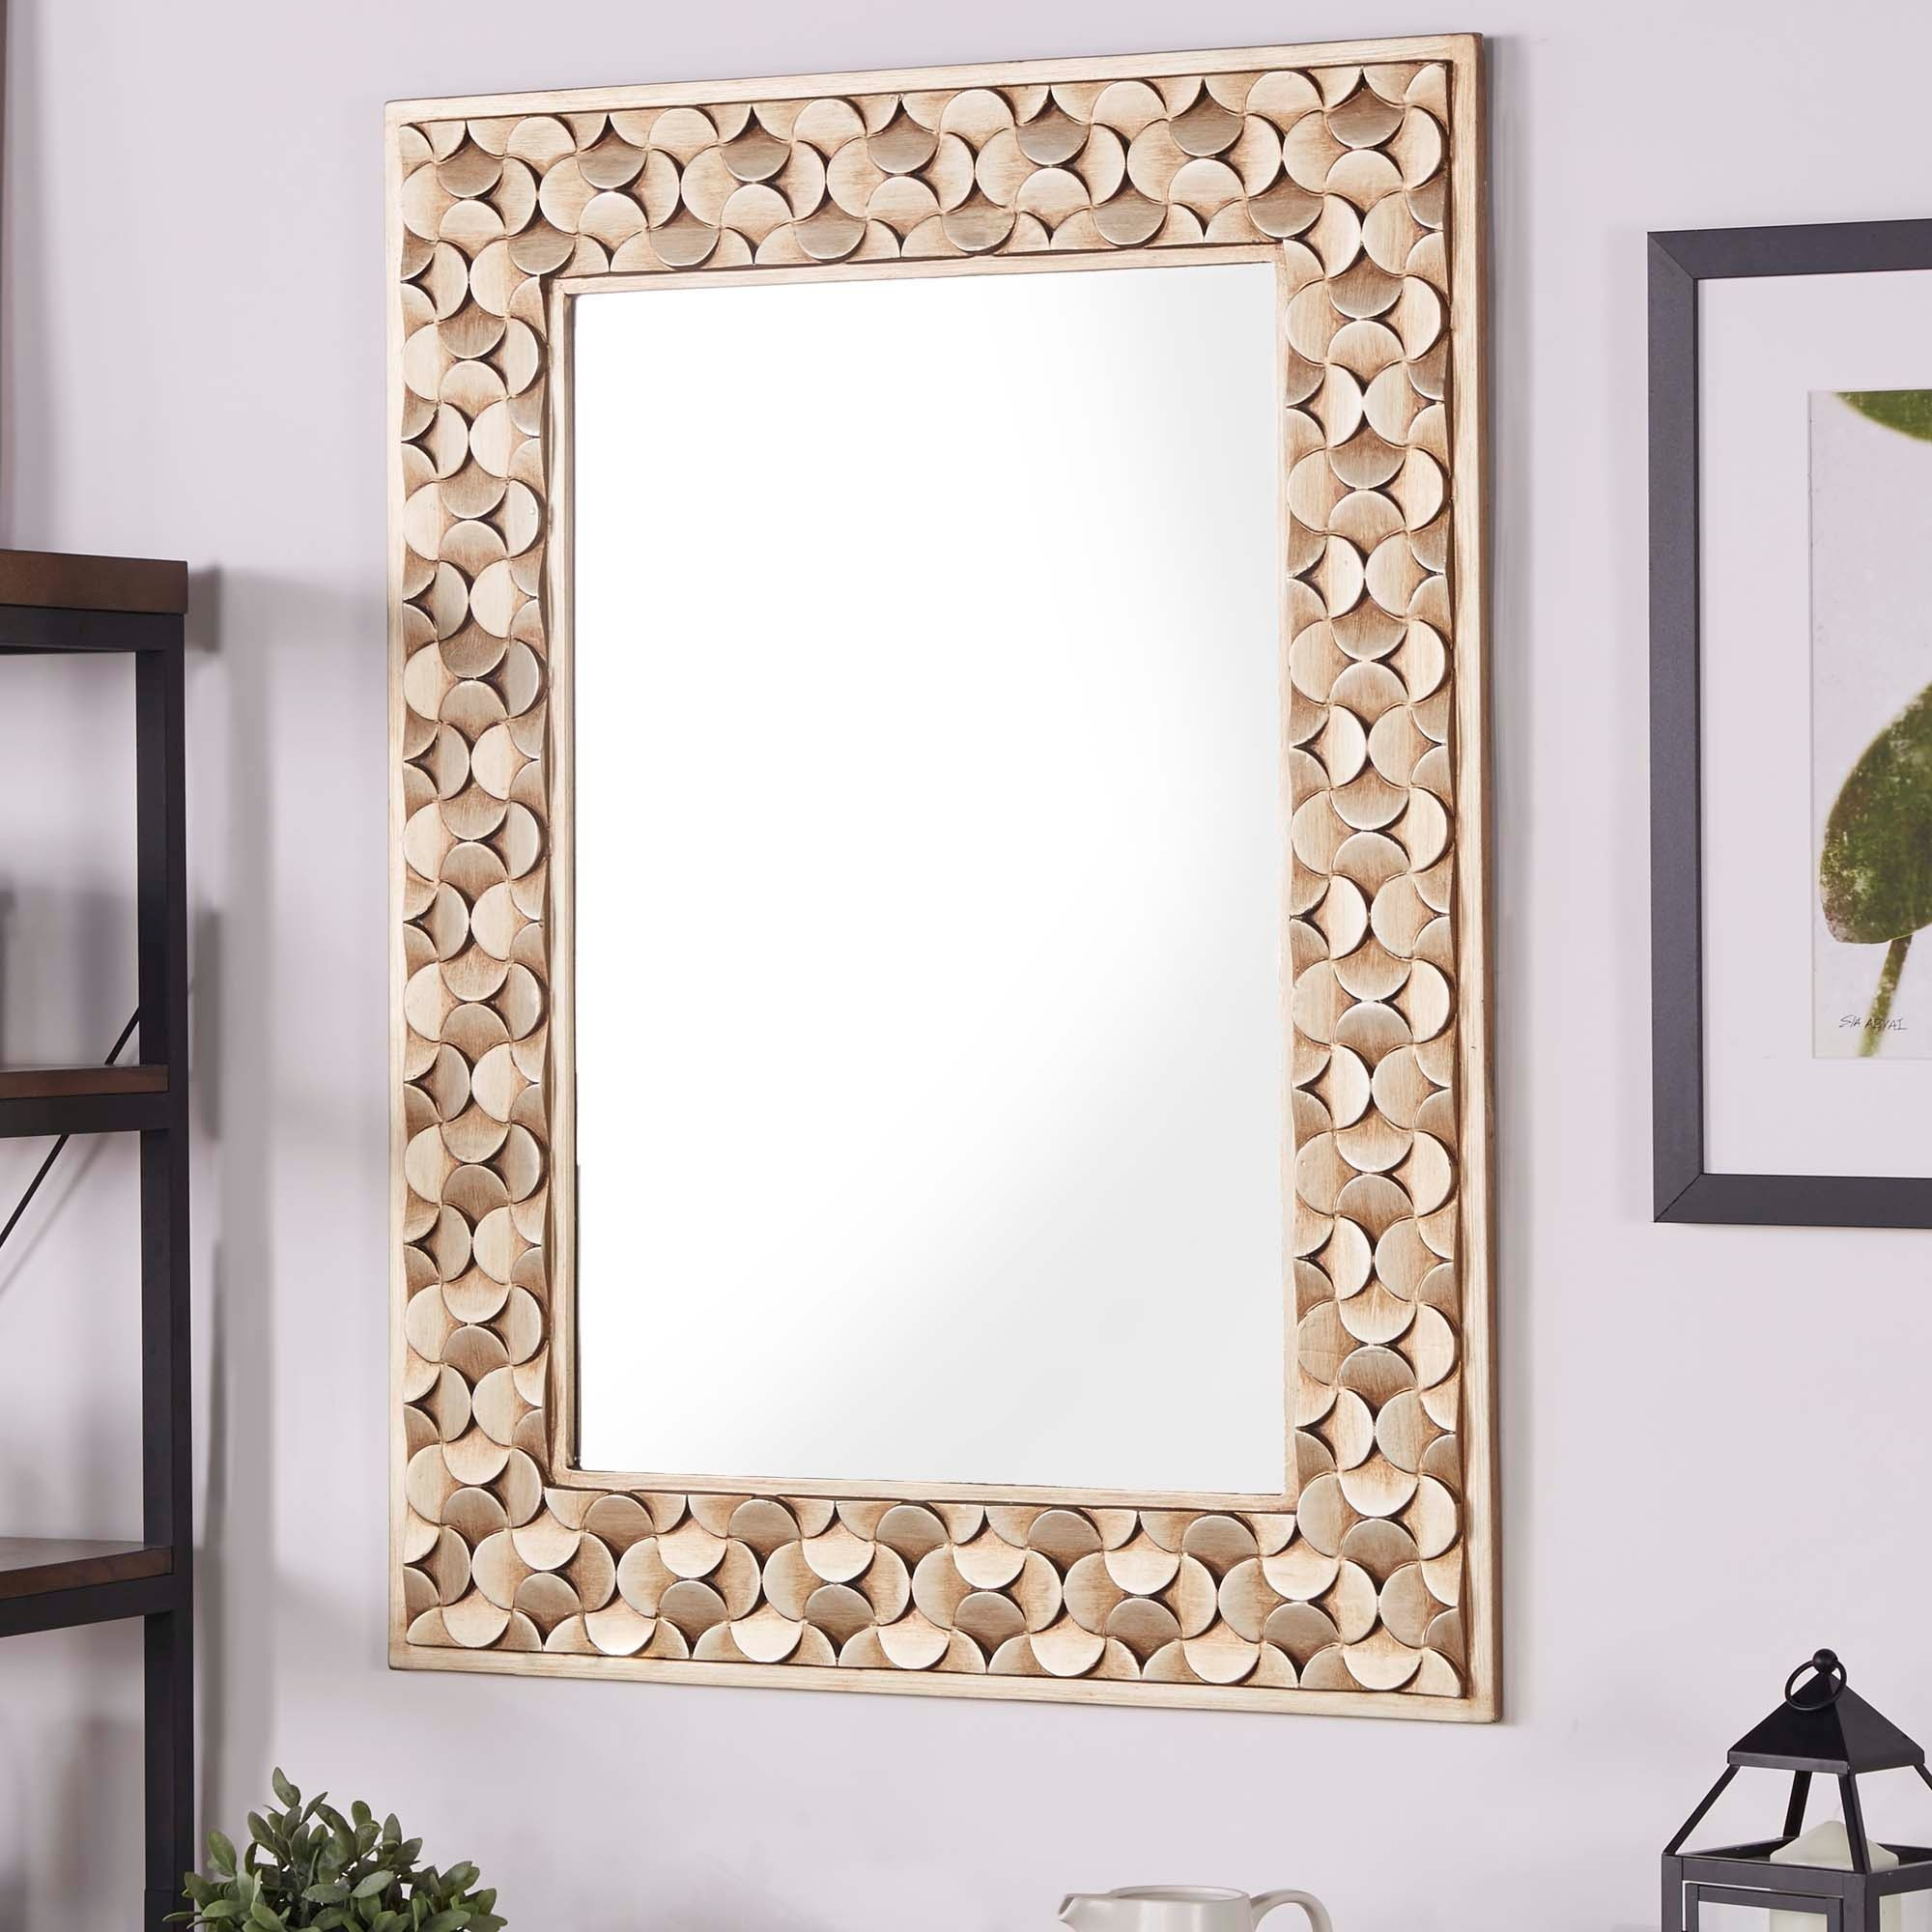 Borghese Champagne Finish Rectangular Accent Wall Mirror With Regard To Rectangle Accent Wall Mirrors (View 21 of 30)